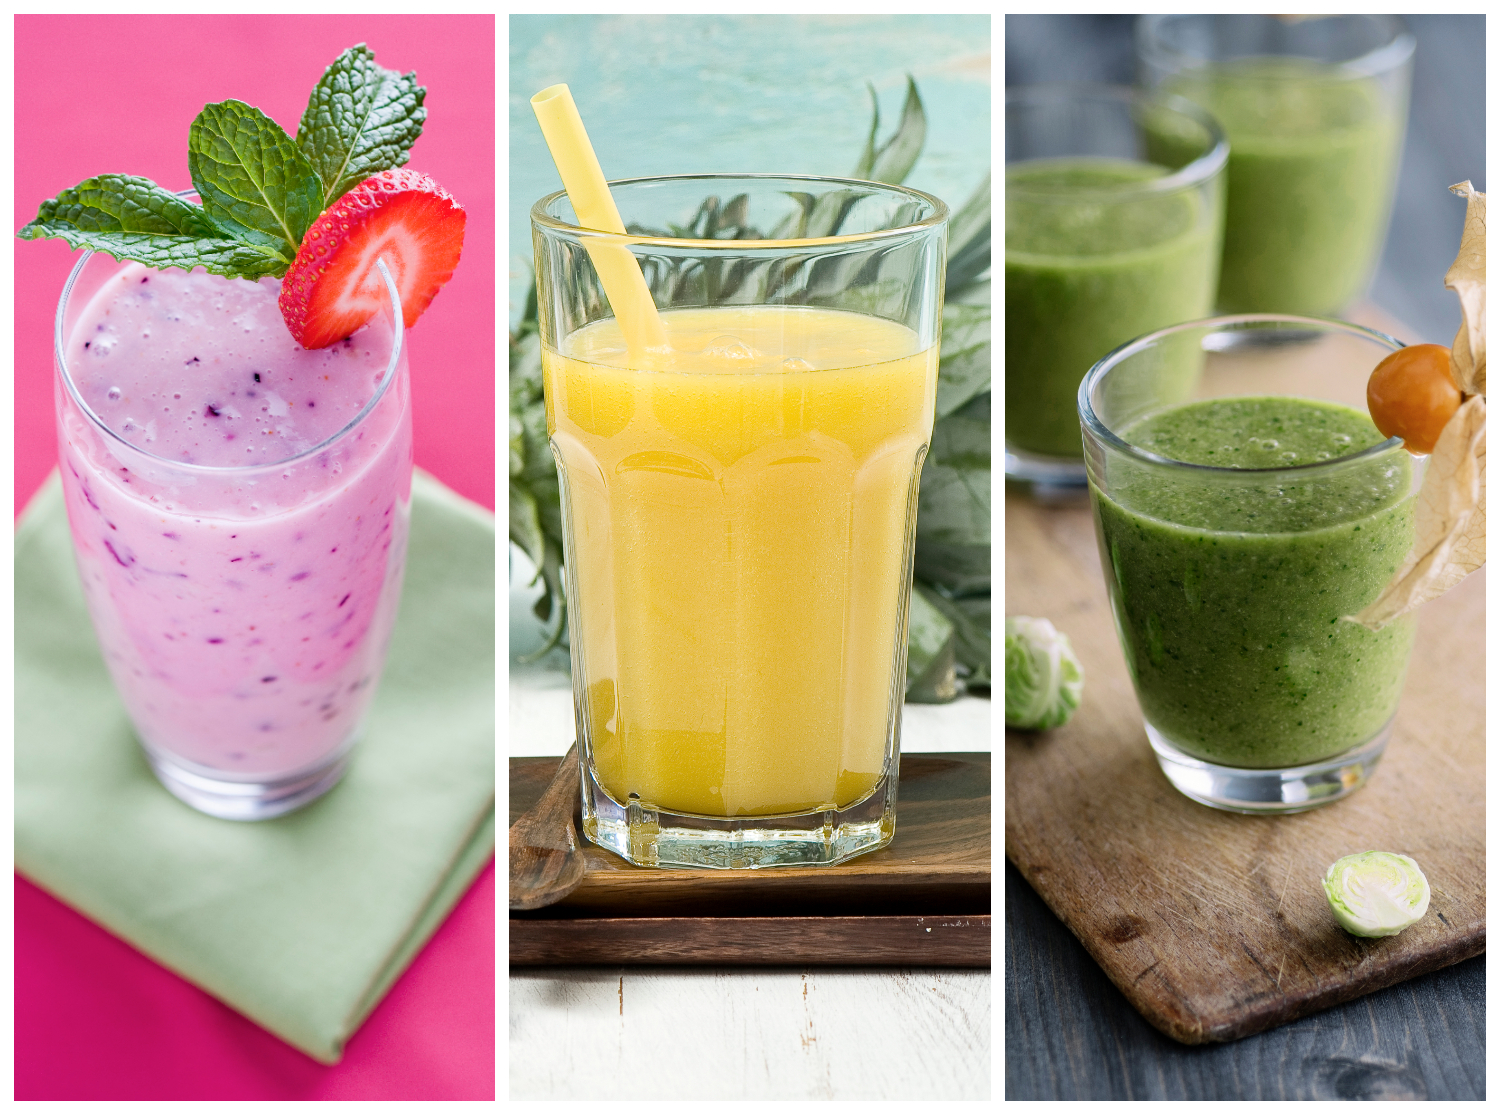 liquid detox and shake diet recipes